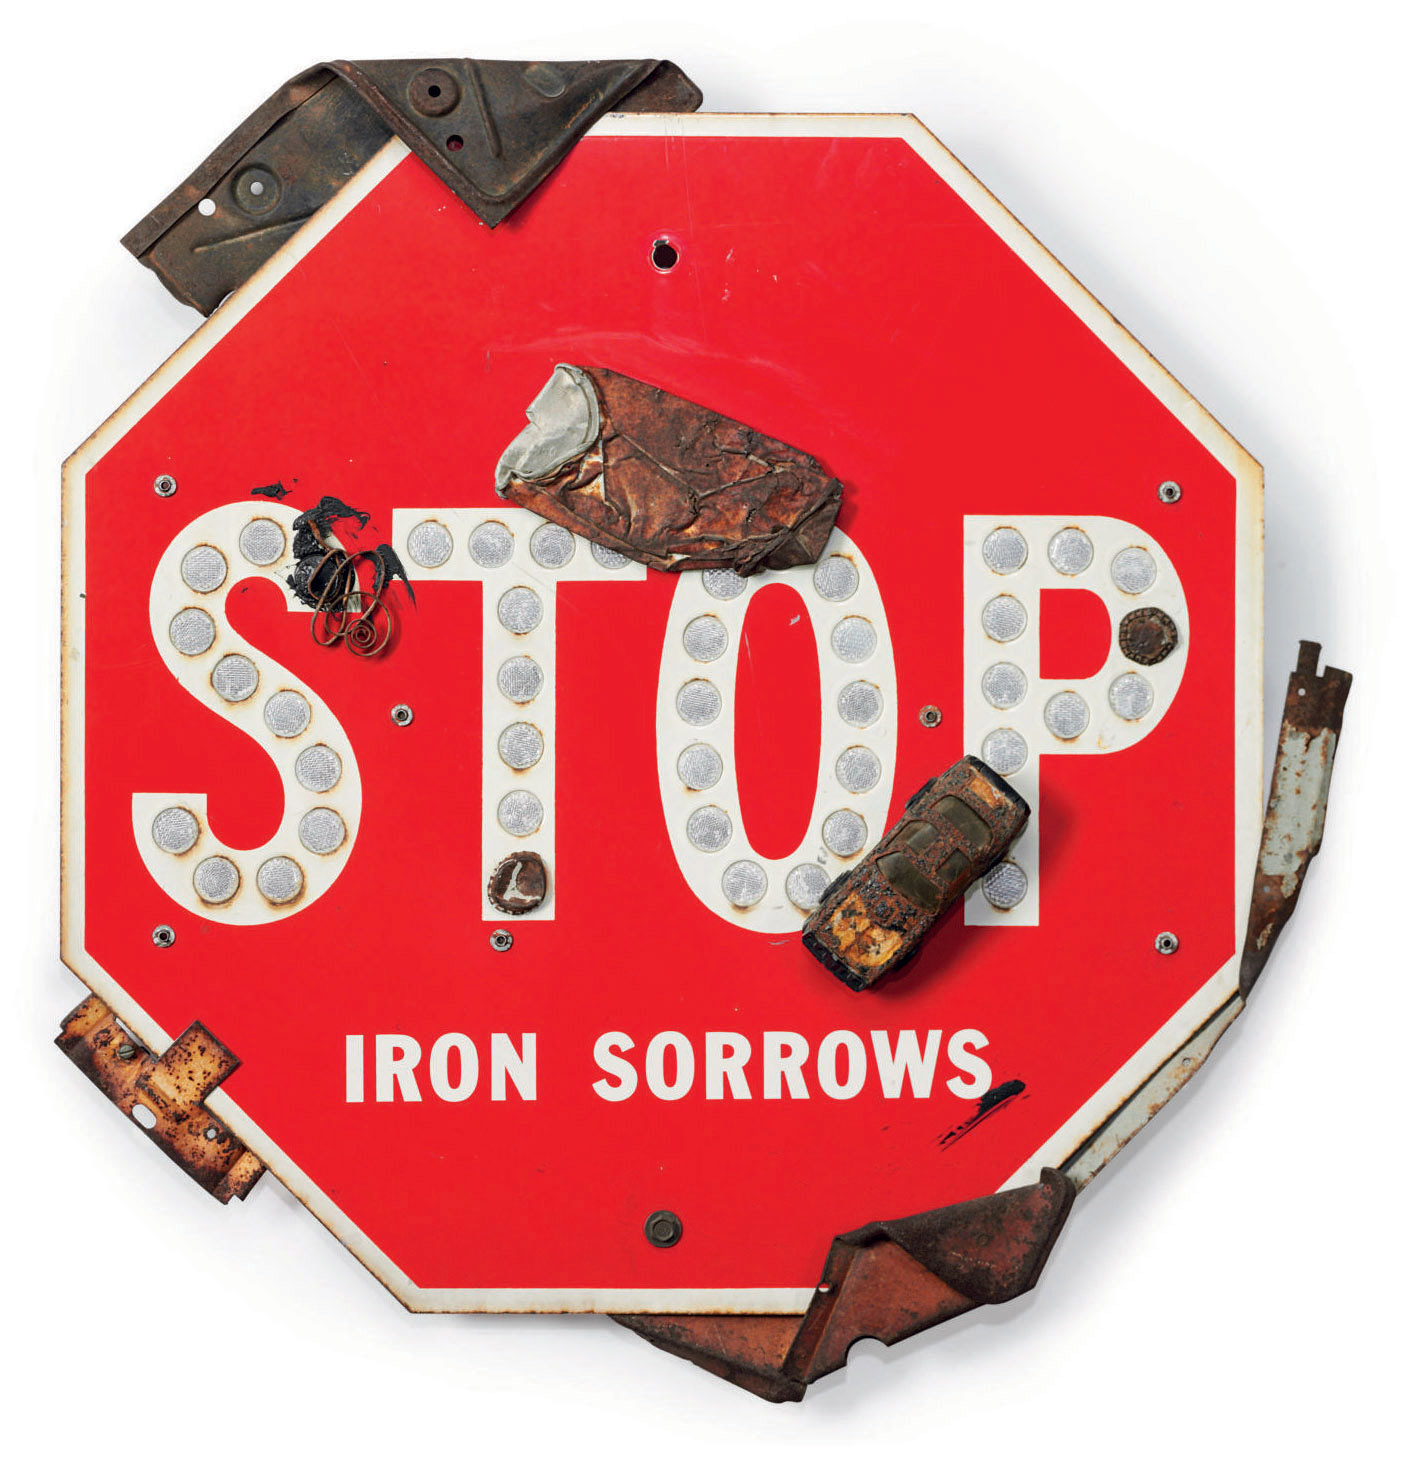 Iron Sorrows